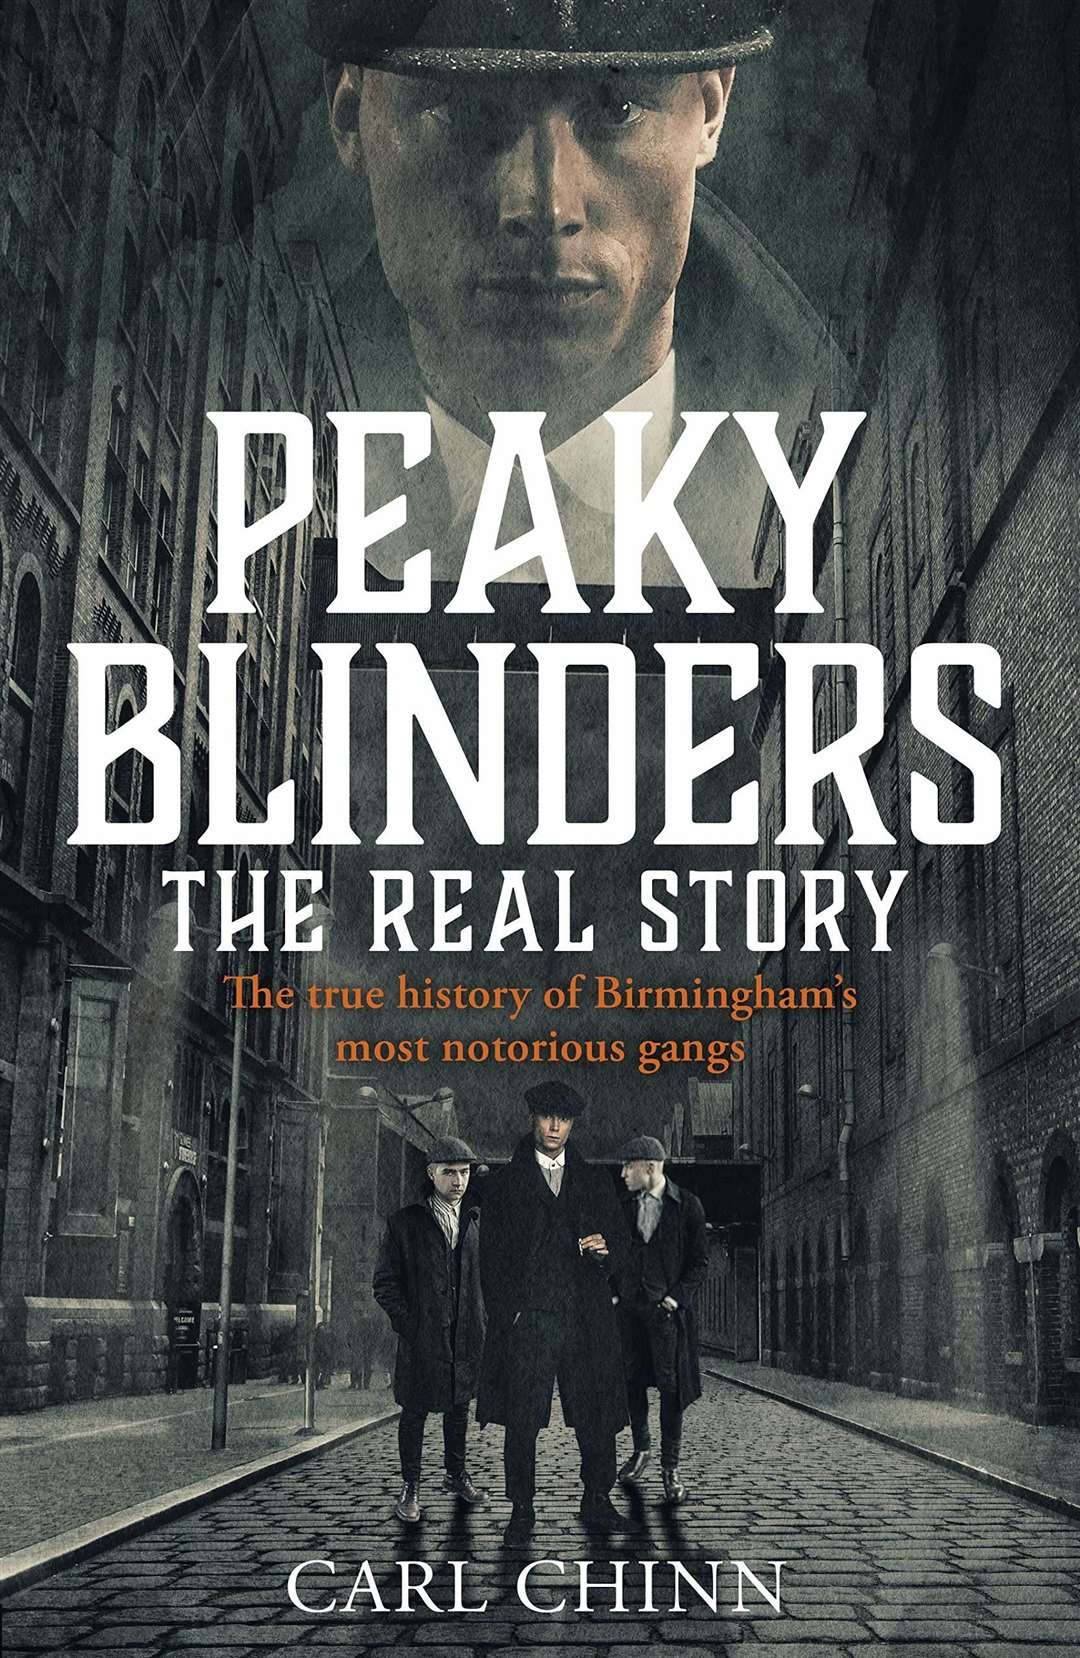 Peaky Blinders, The Real Story by Carl Chinn. (23260833)